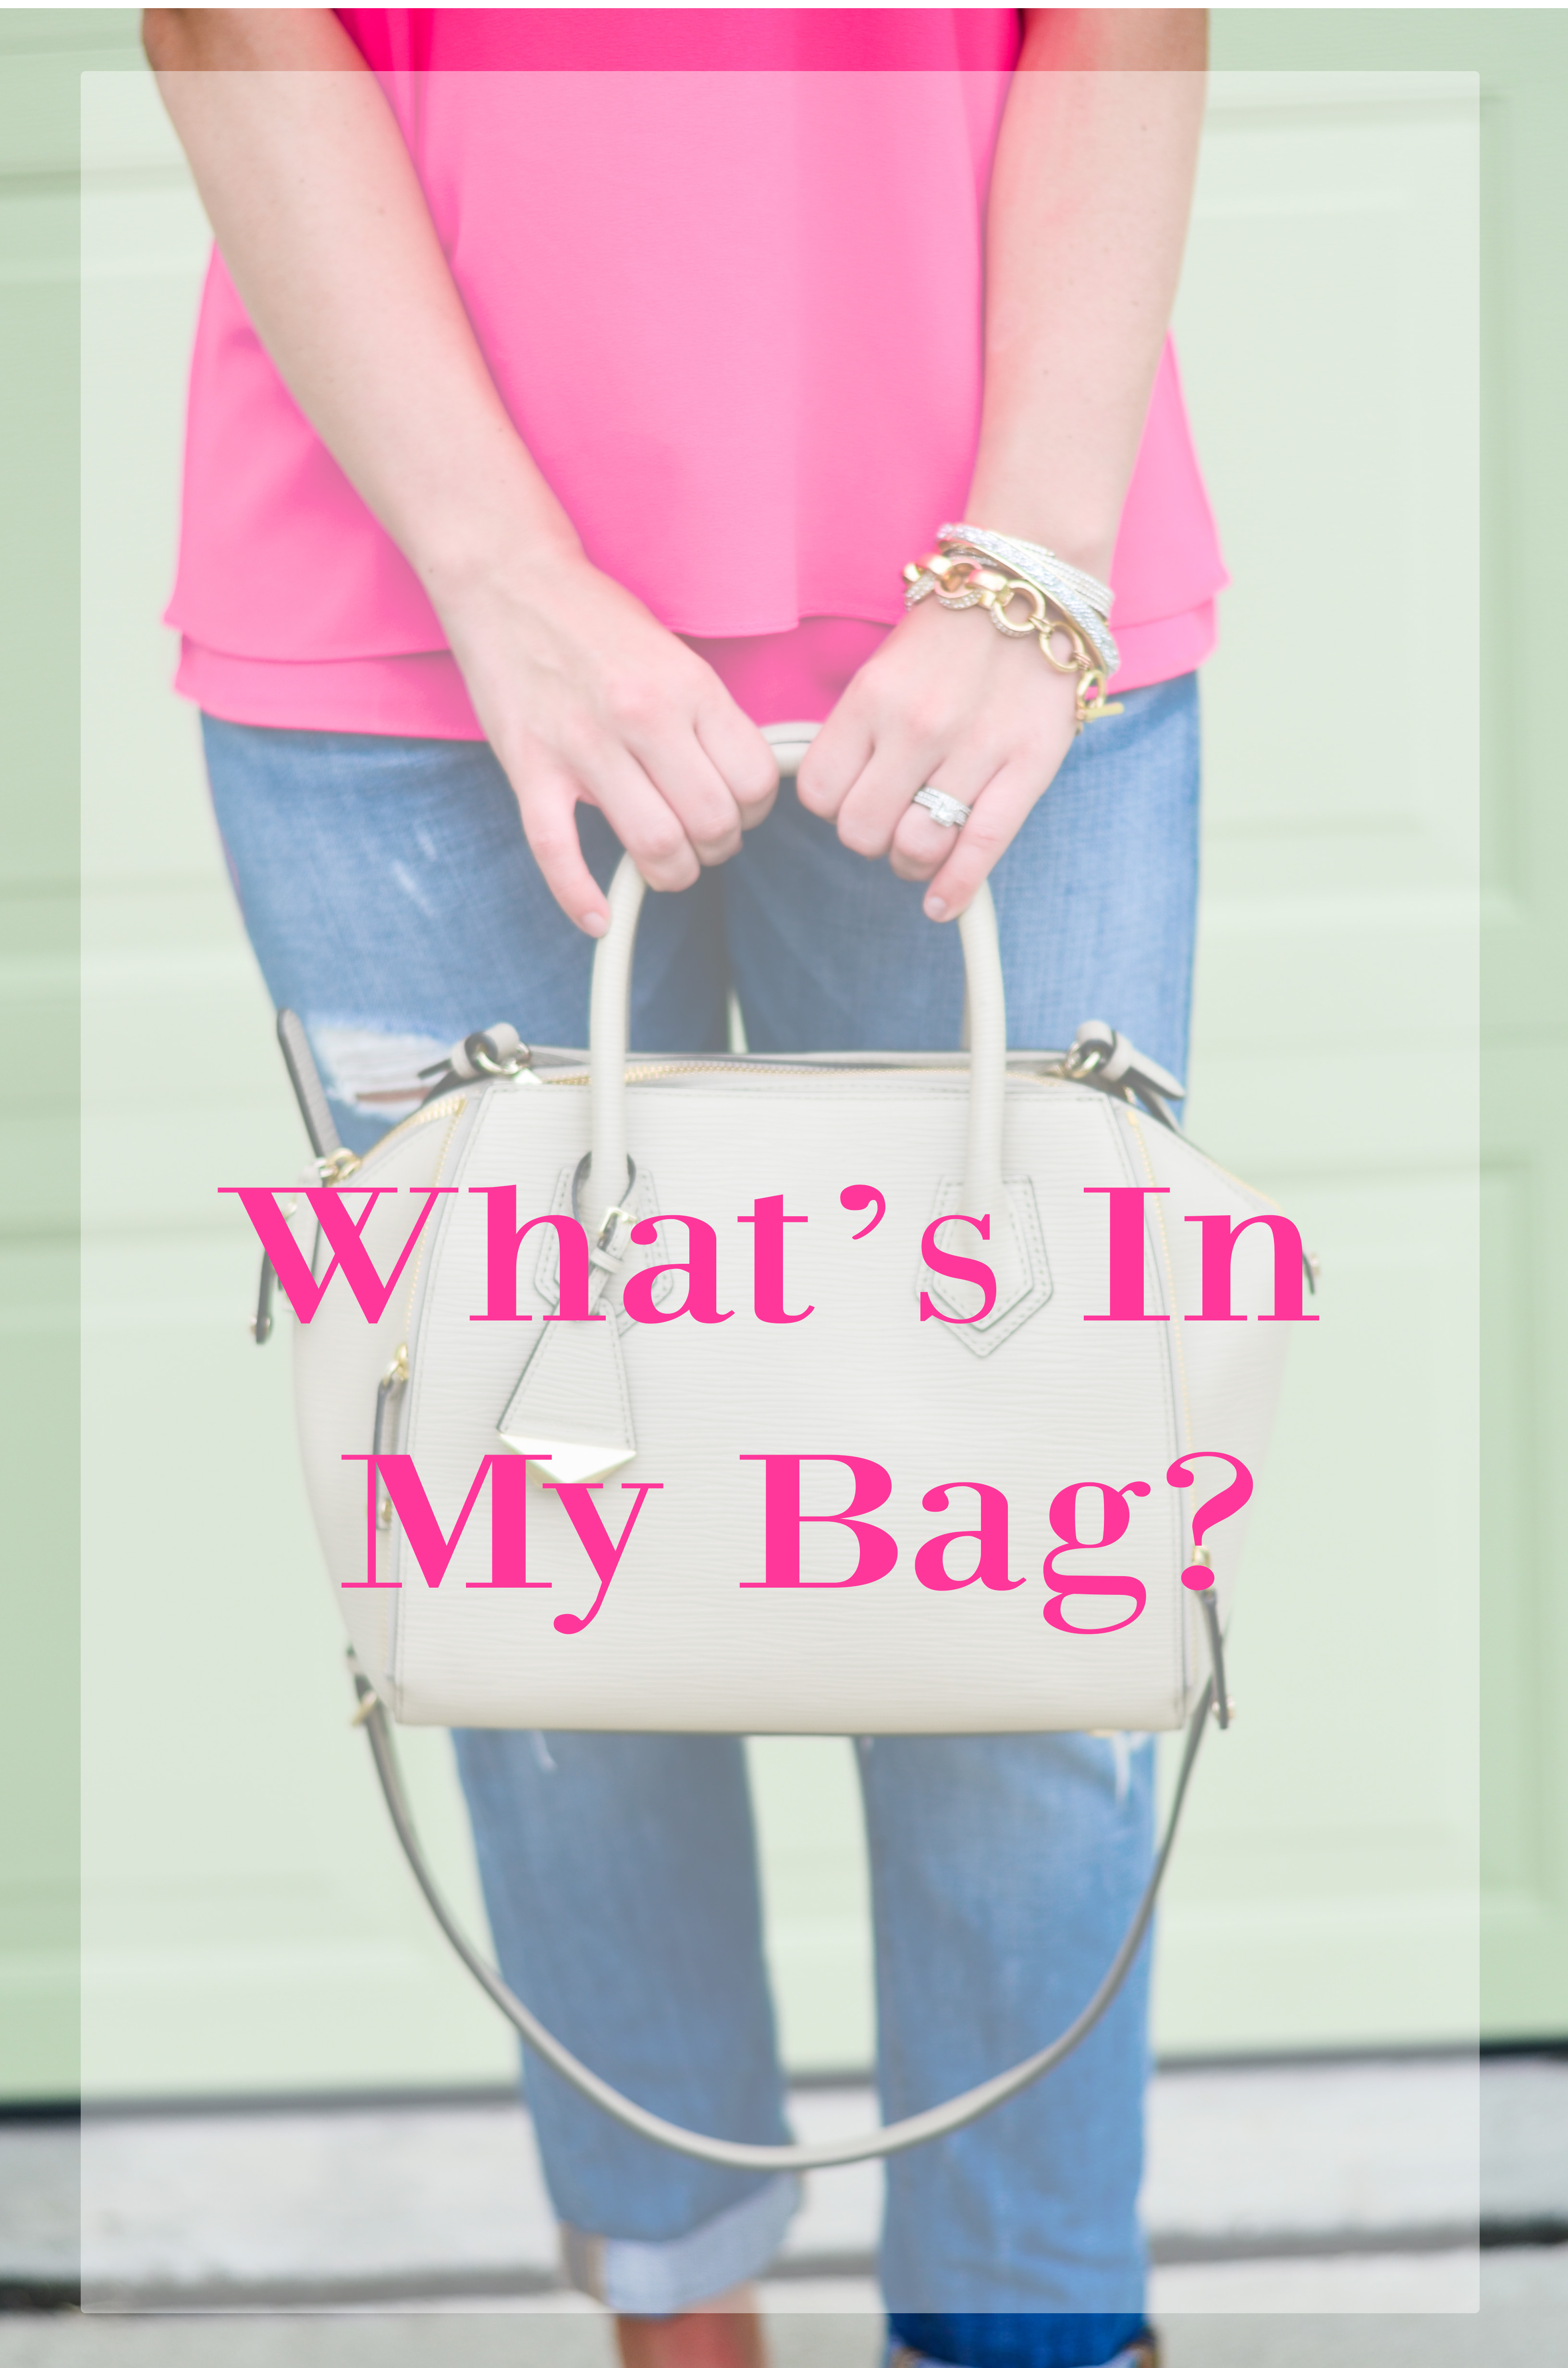 whats in my bag-6